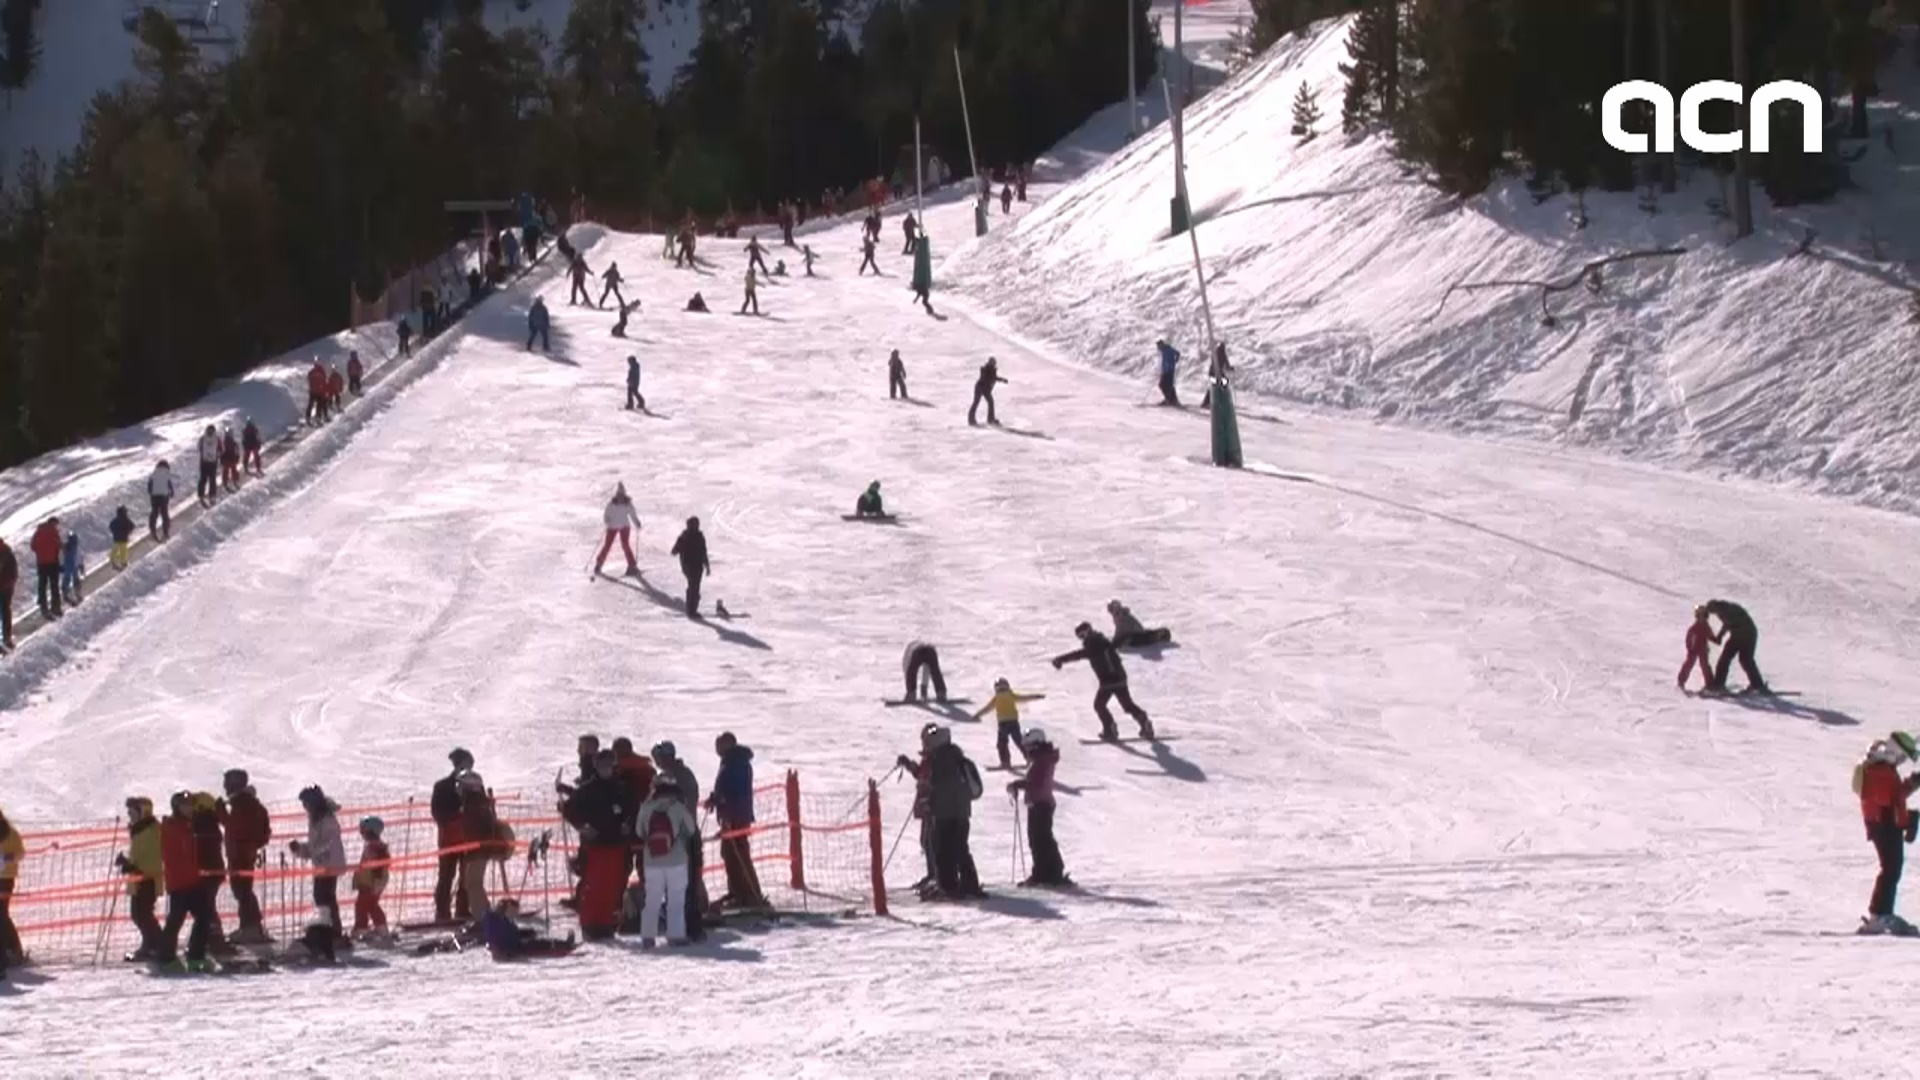 Ski season might last till early May says resort